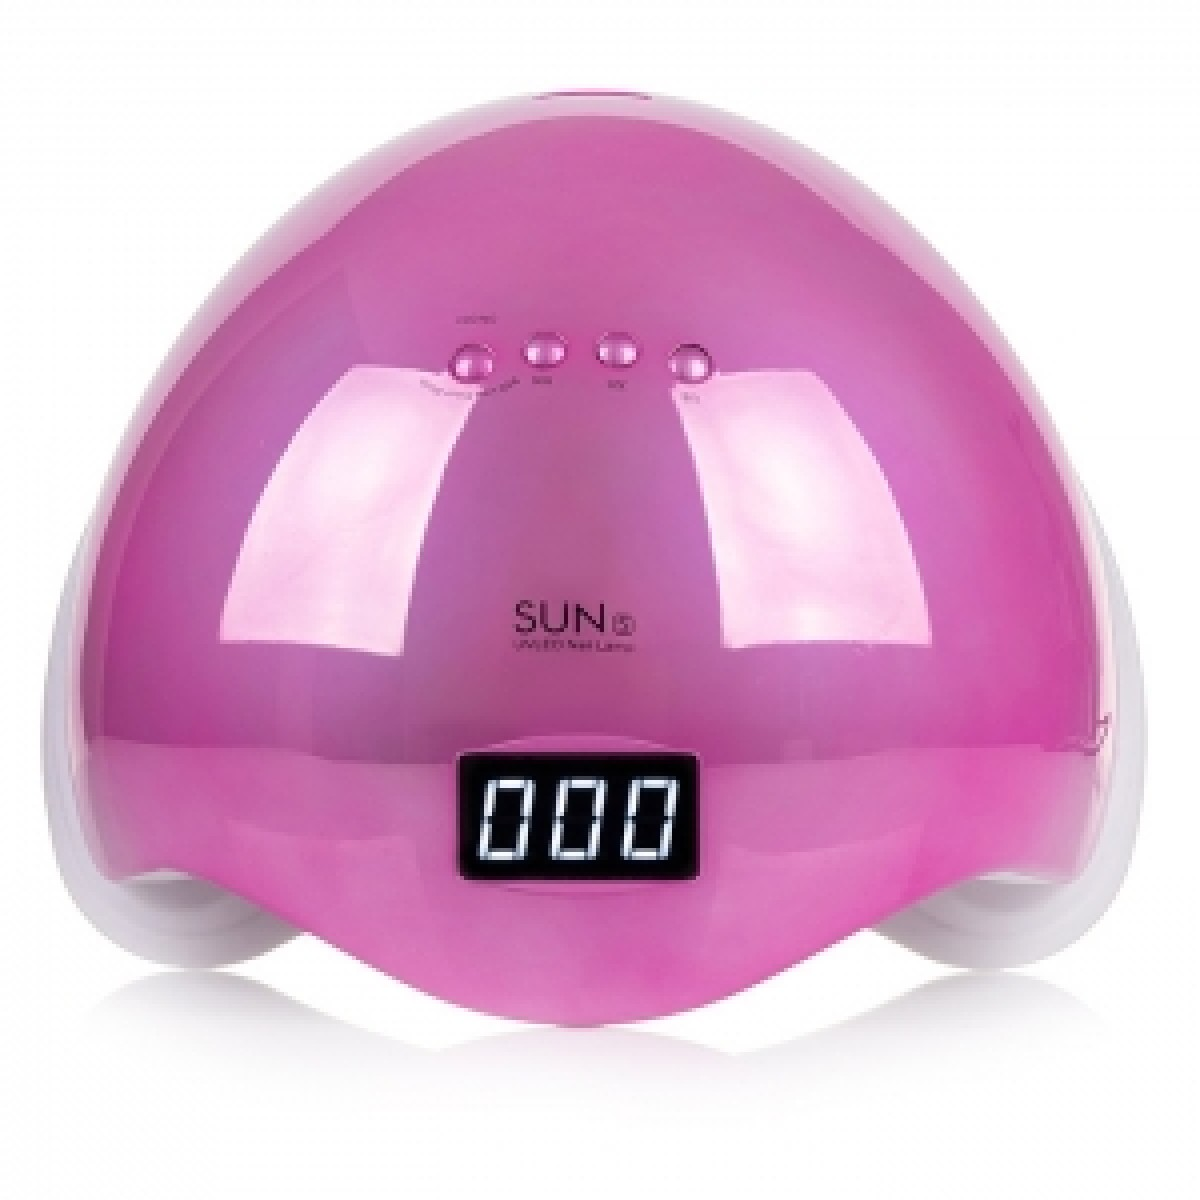 LED+UV Lamp SUN 5 48W Mirror Pink (зеркальная)